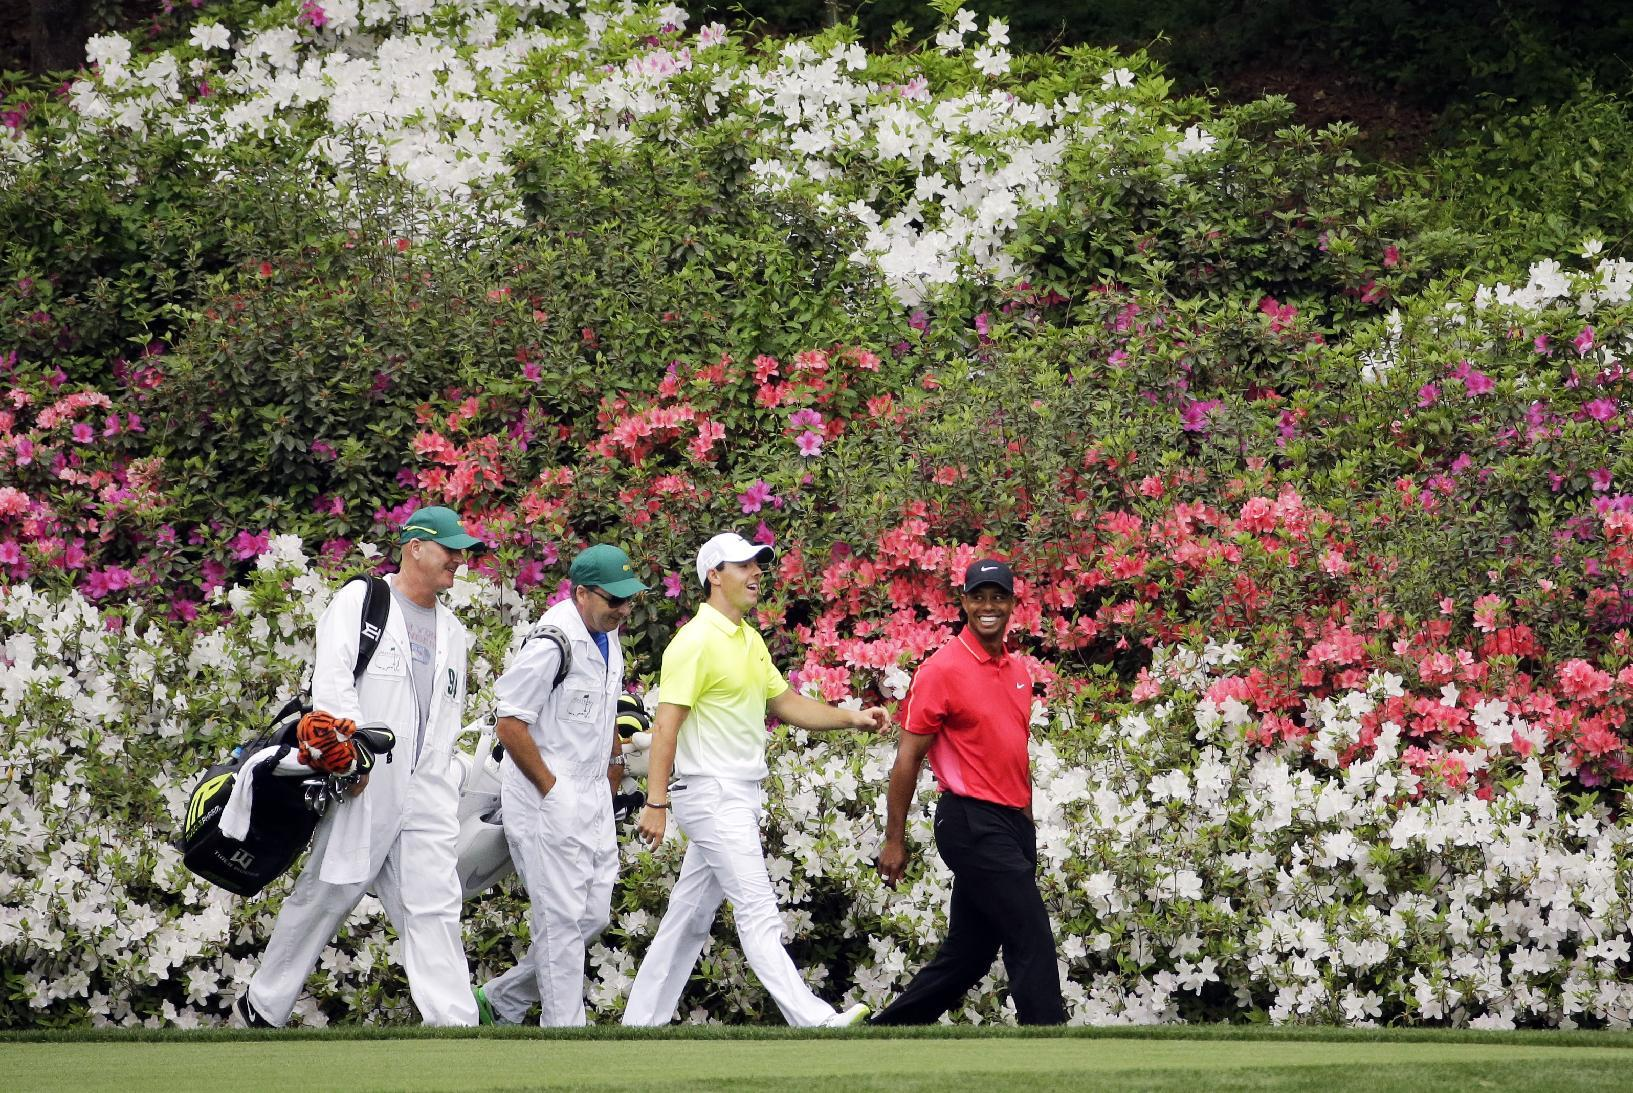 Tiger Woods, right, walks with Rory McIlroy, of Northern Ireland, and their caddies. (AP)